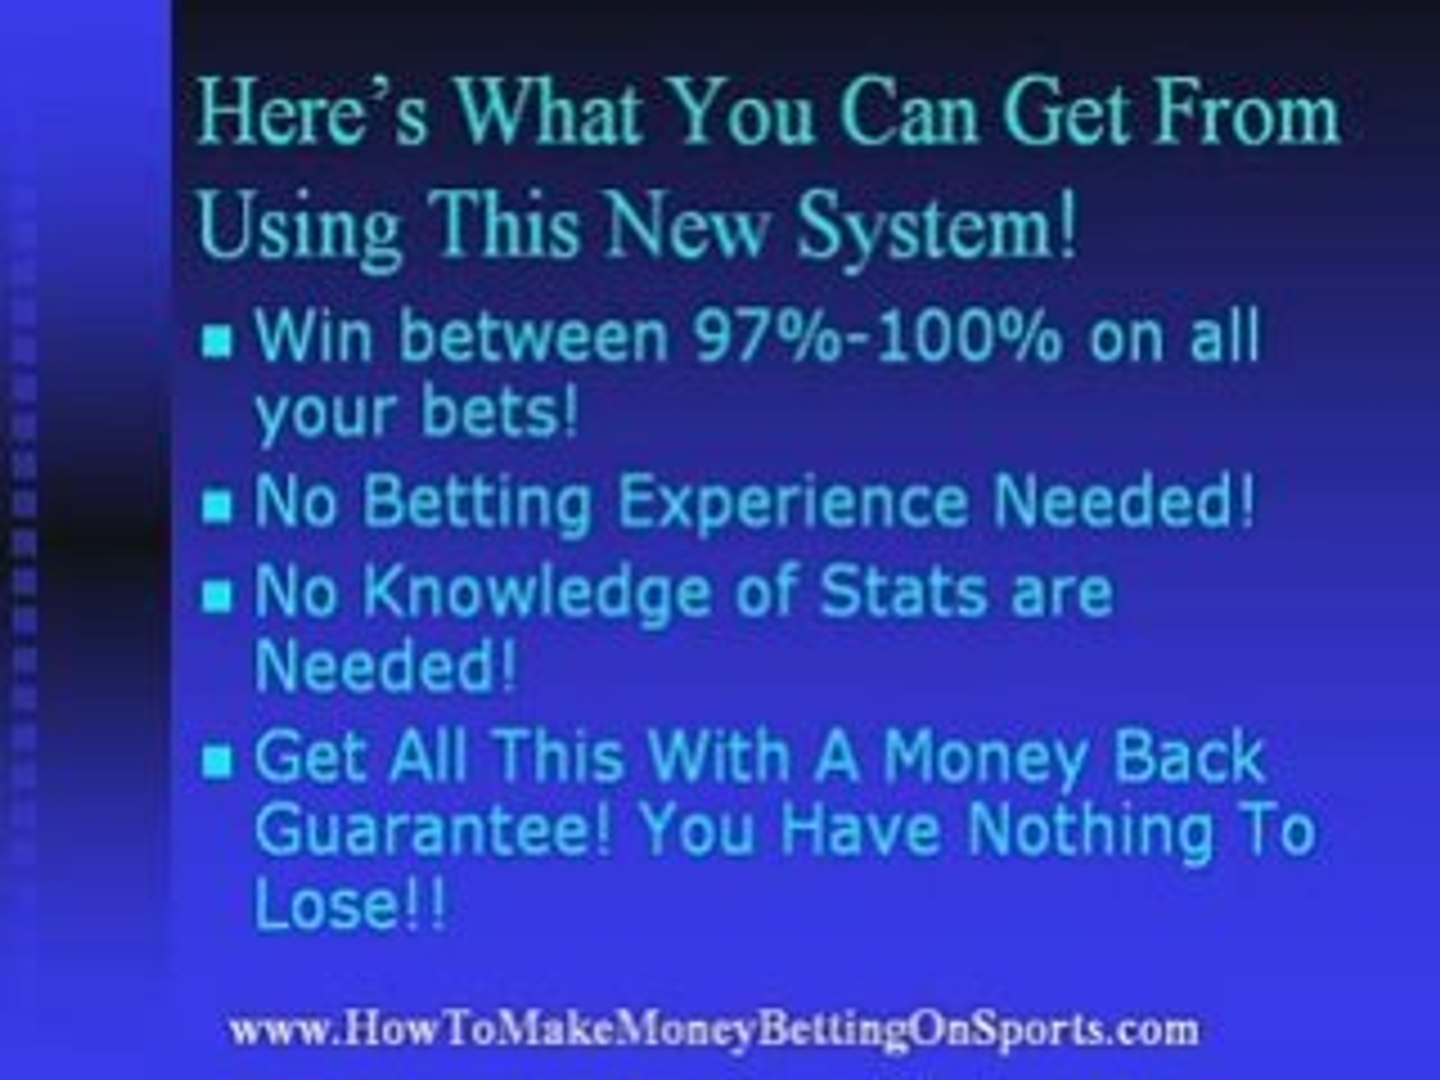 Online betting money back scotia investments limited address stamps